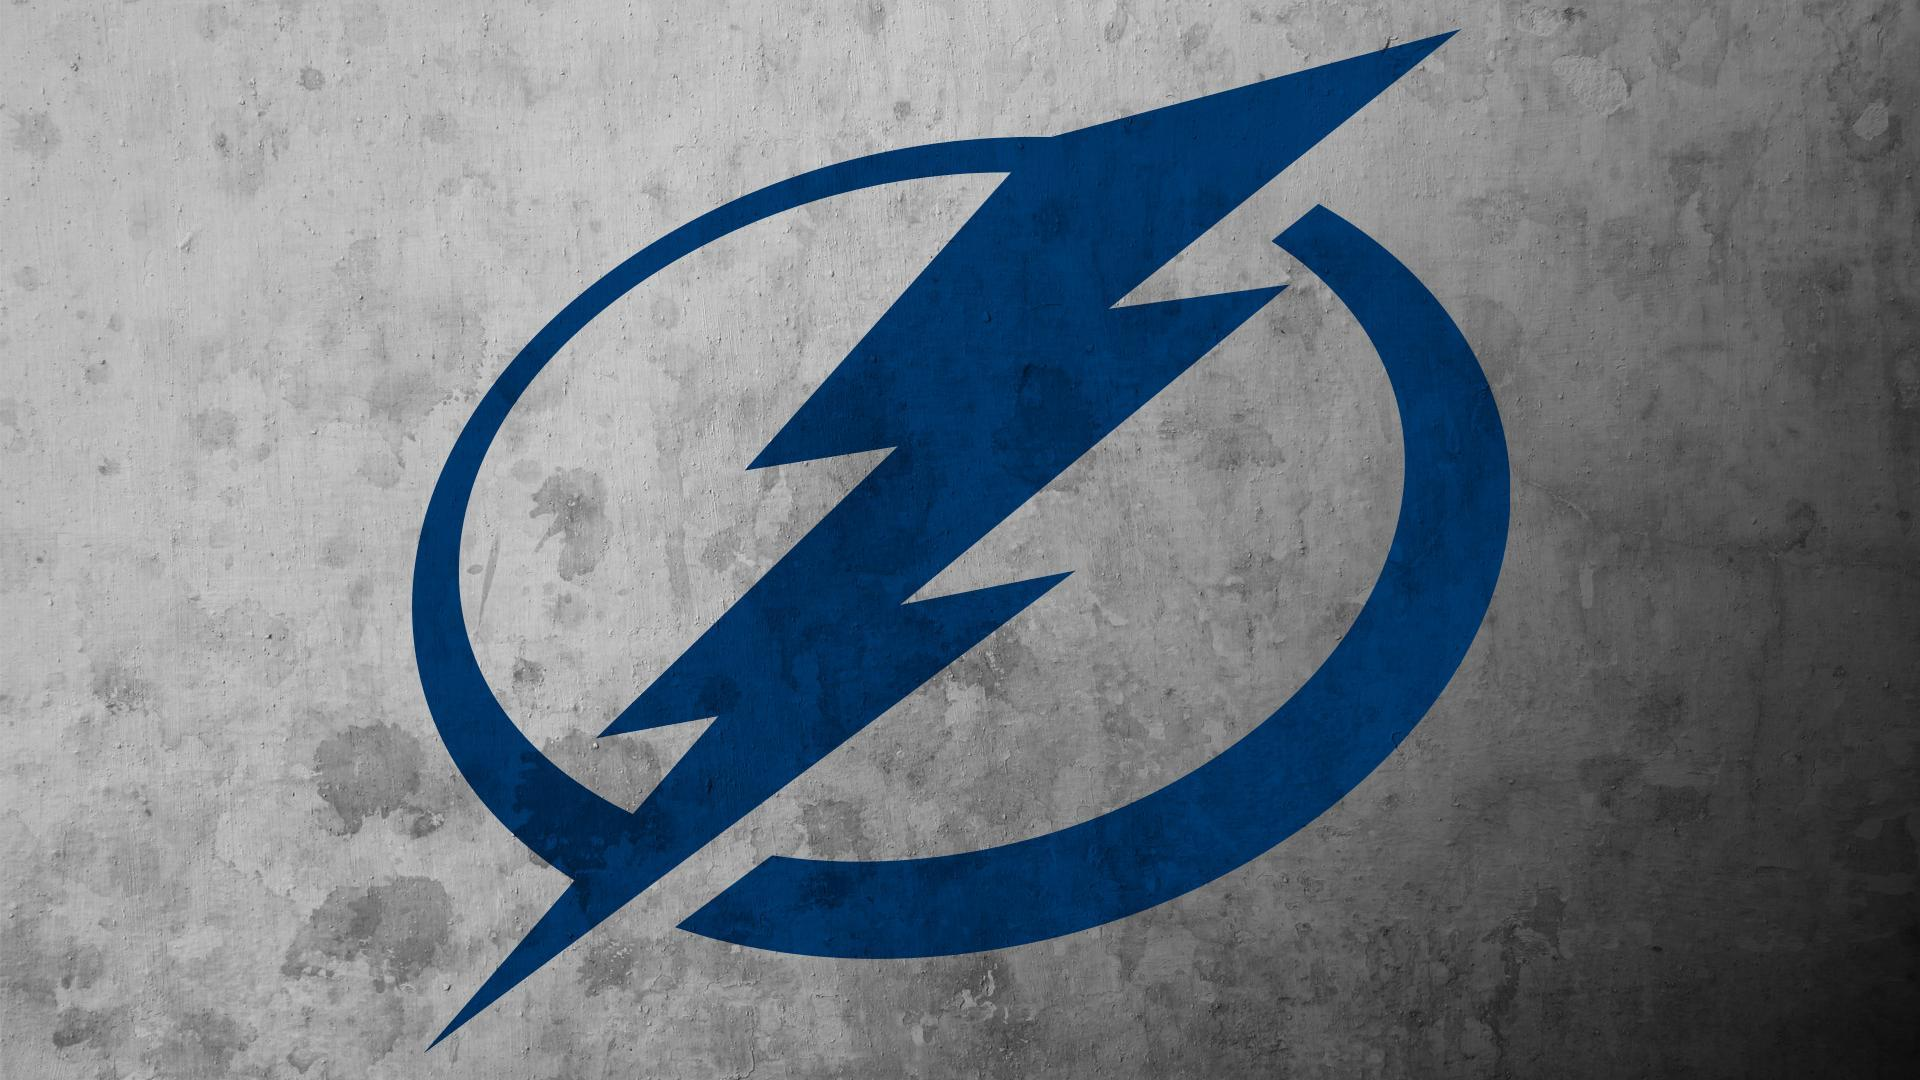 Tampa Bay Lightning Wallpapers 12